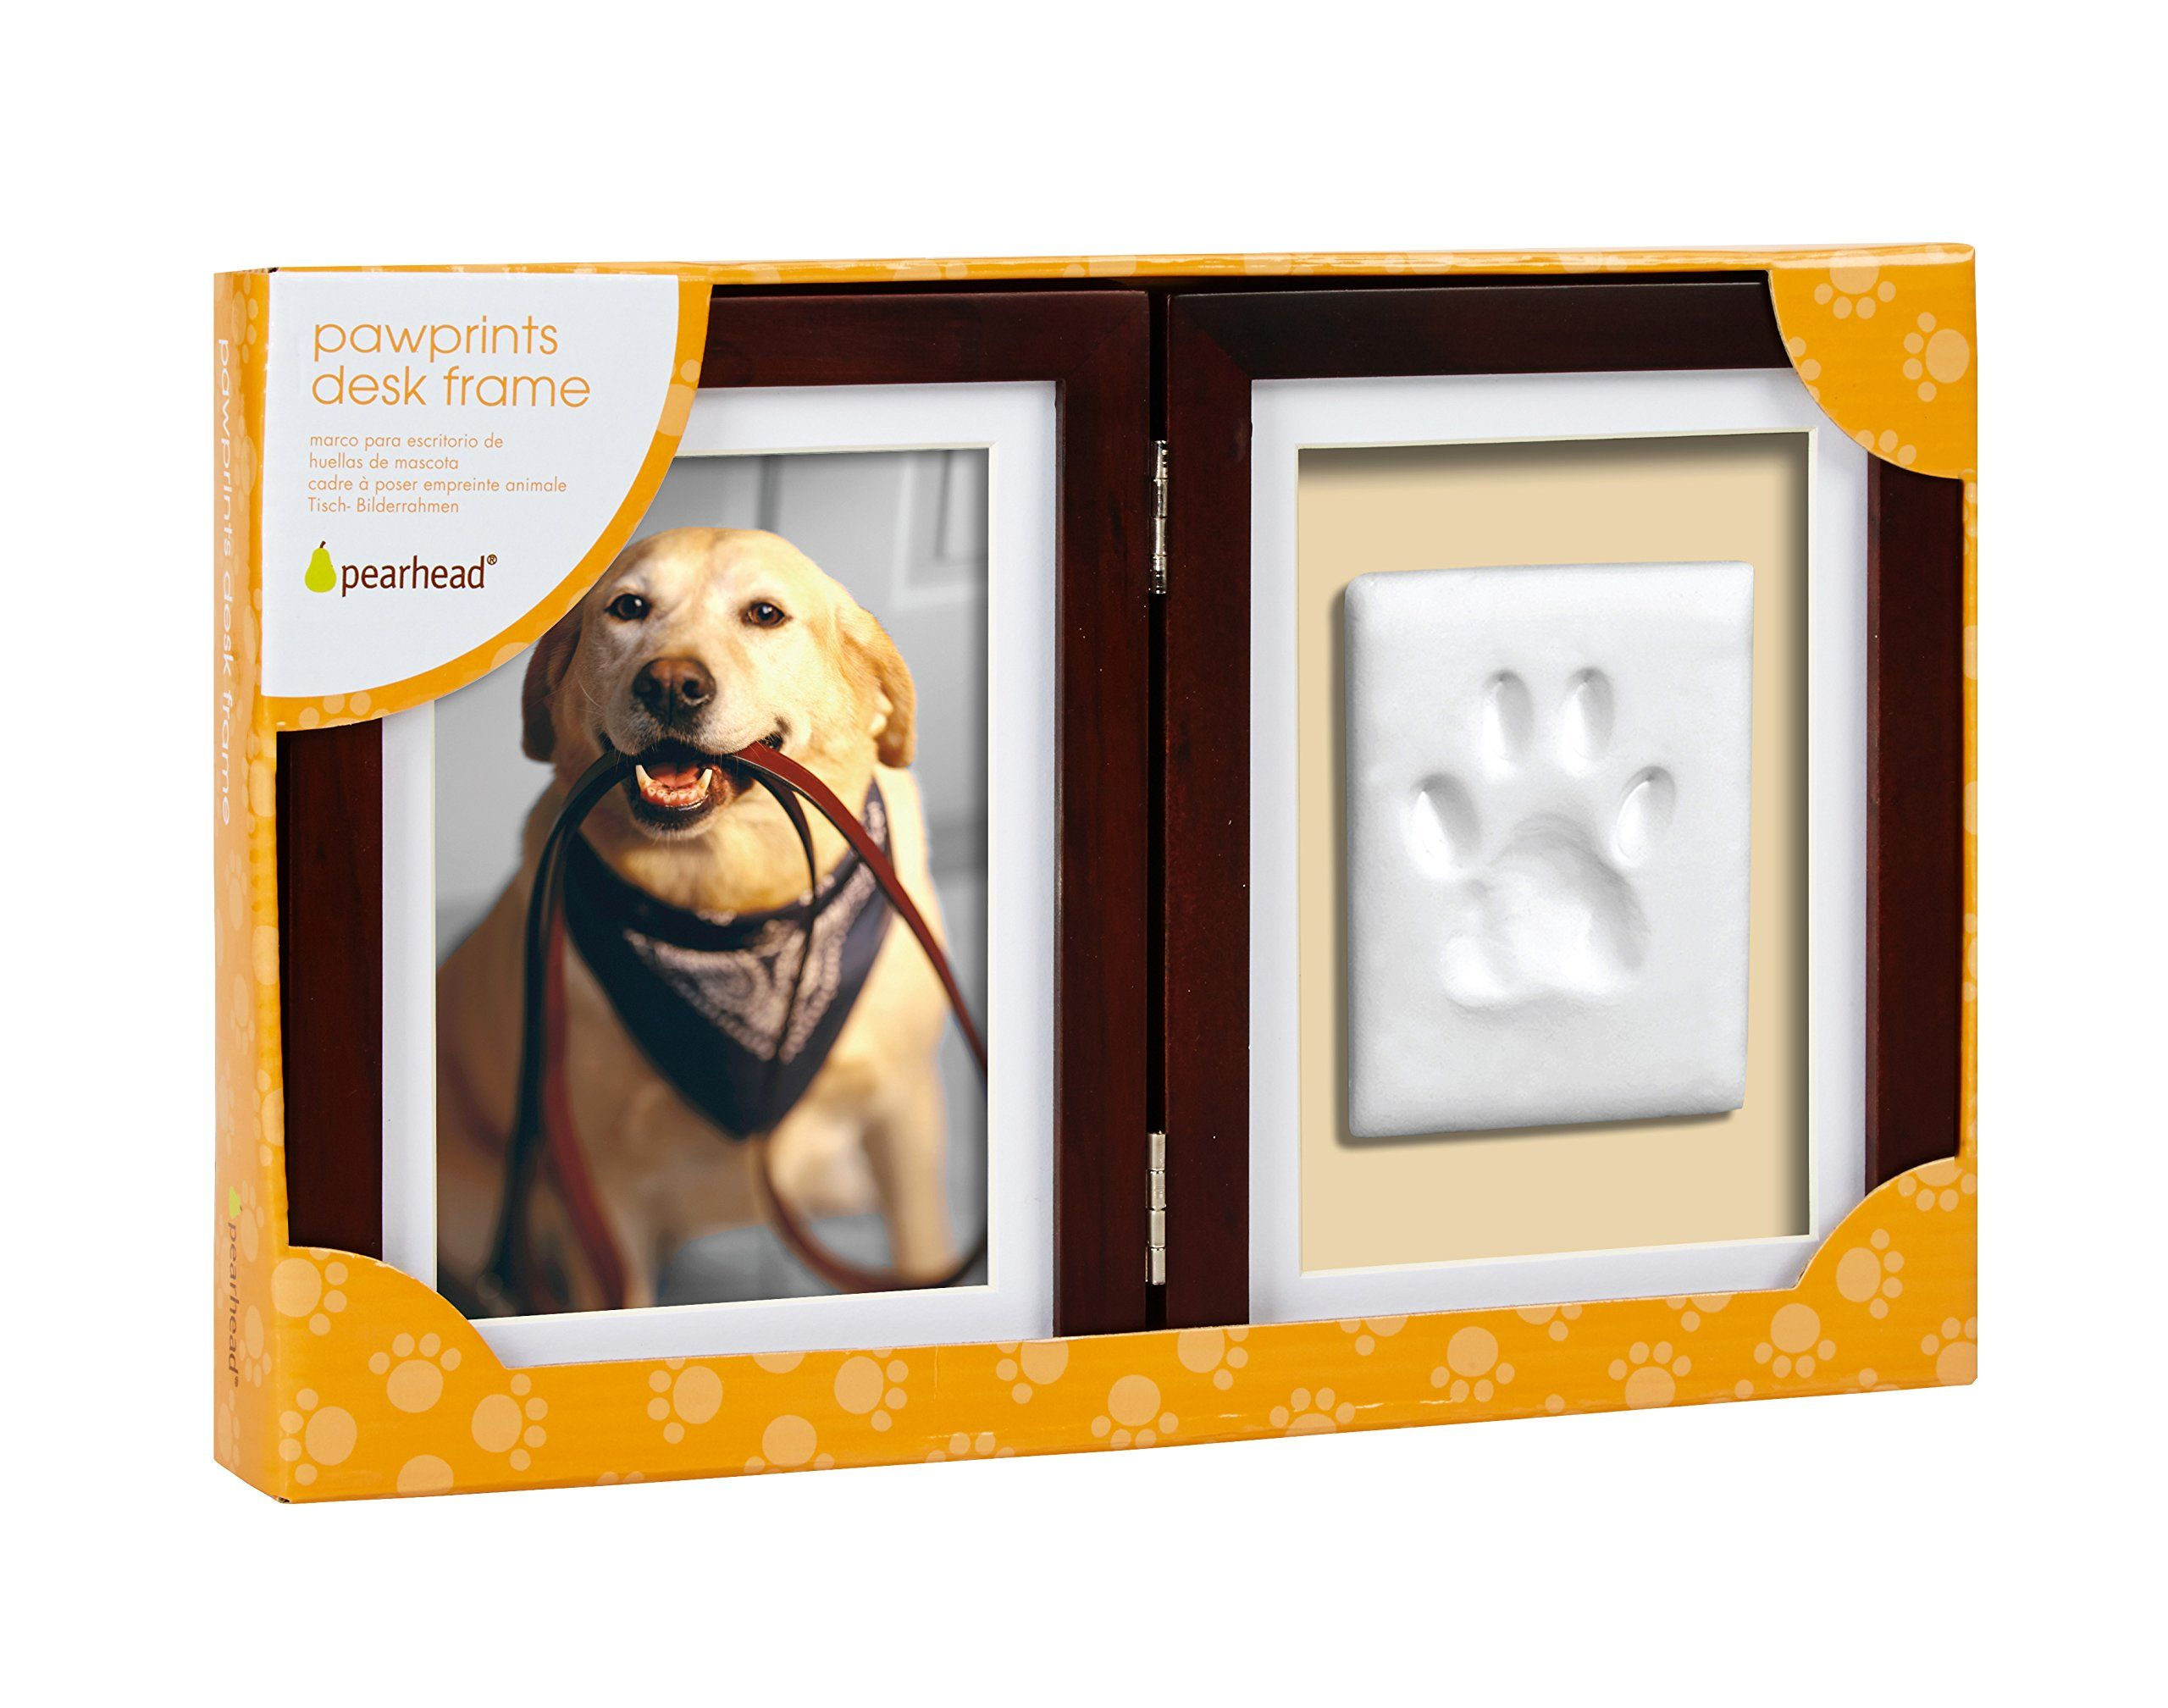 Jack Russel Tombstone Plaque with a Photo of a Dog Ceramic plate with Your Dog/'s Photo Custom Memorial Plaque